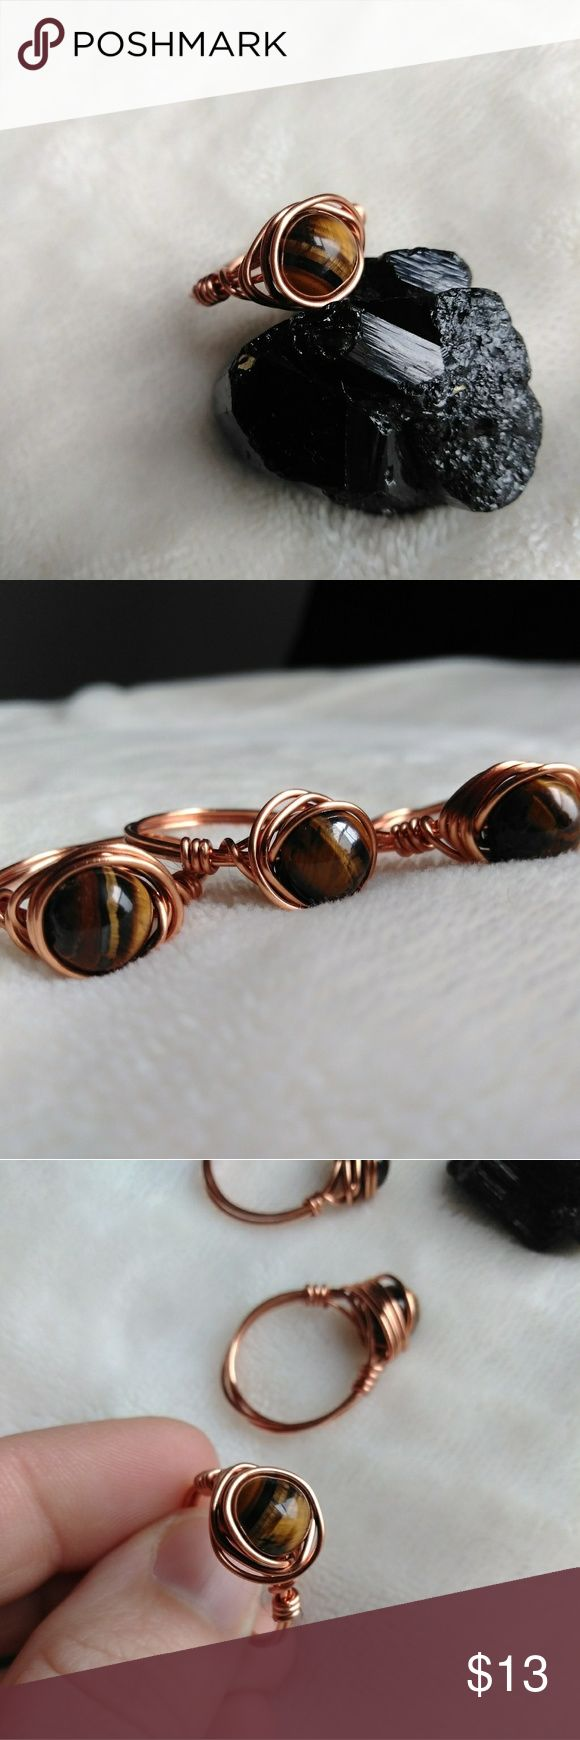 Gemstone Ring - Copper Ring - Boho Style Handmade by Zoey  Genuine Tigers Eye crystal wrapped with copper wire.  Ring size 8  Boho, bohemian, gypsy, tribal, hippie, accessories, crystals, handmade, yoga, chakras, meditation, zen, gemstone,  statement ring, cocktail ring Zoey Zoso Jewelry Rings #wirewrappedringscrystal